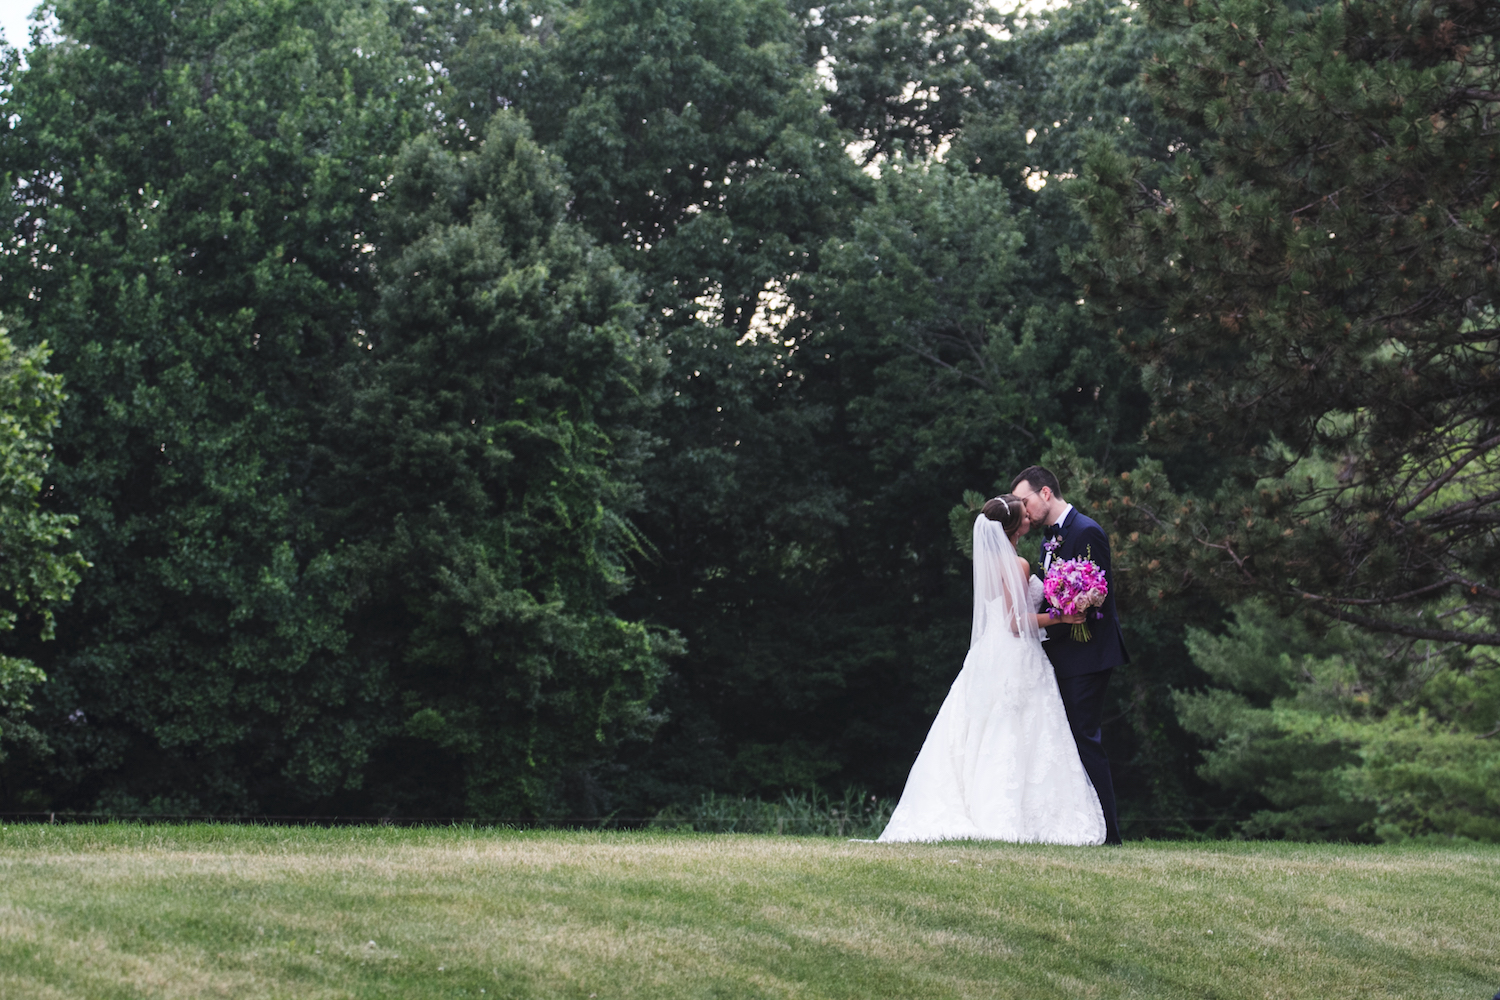 samantha&mike-kissing-in-field-nj-wedding-photography